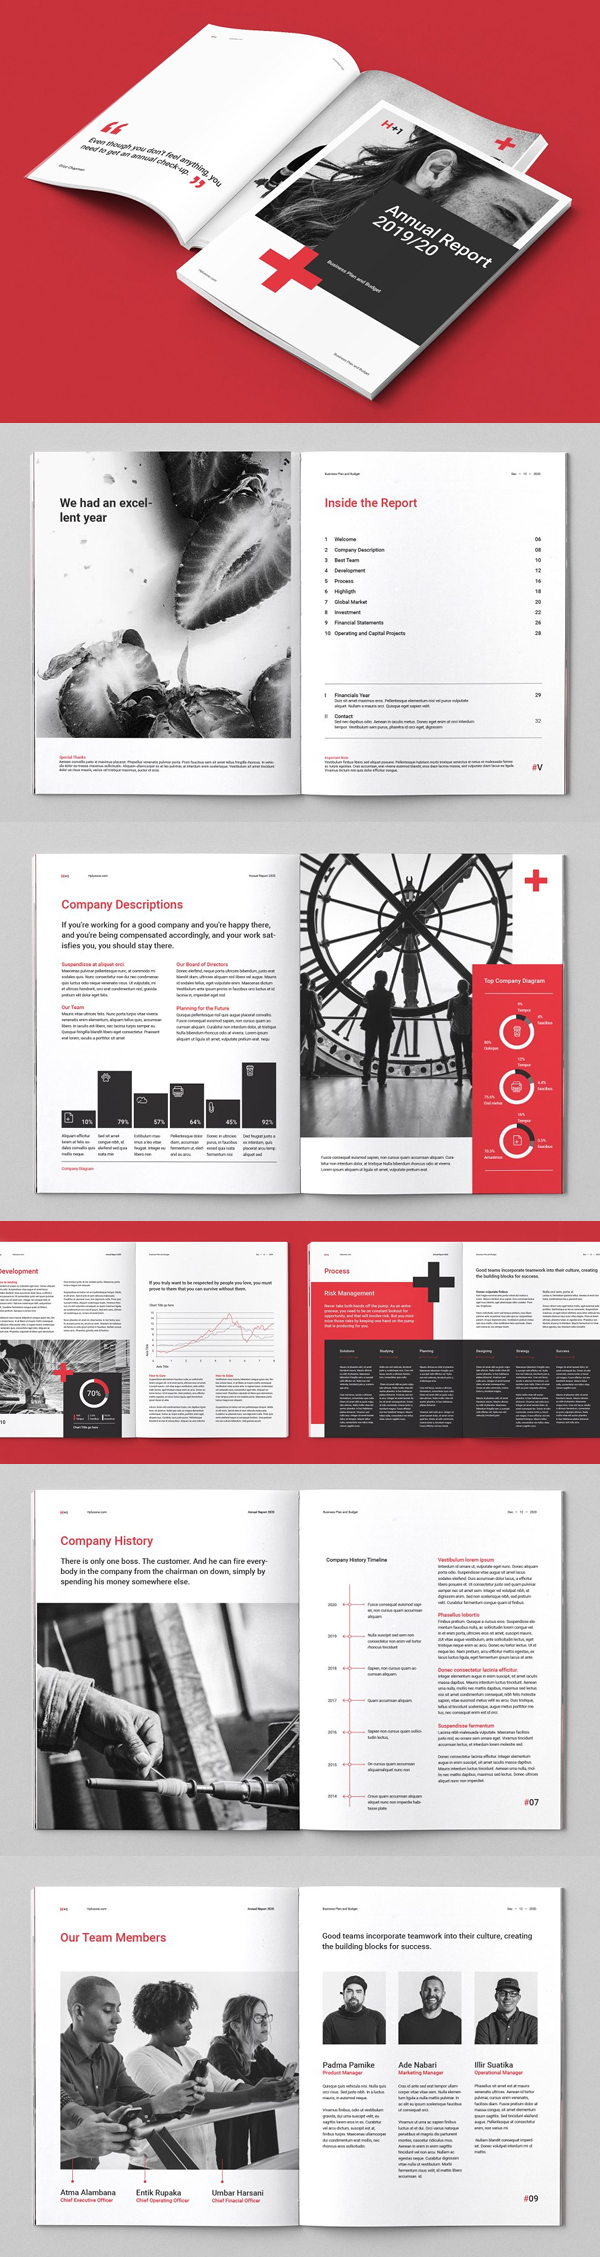 Clean Annual Report Template